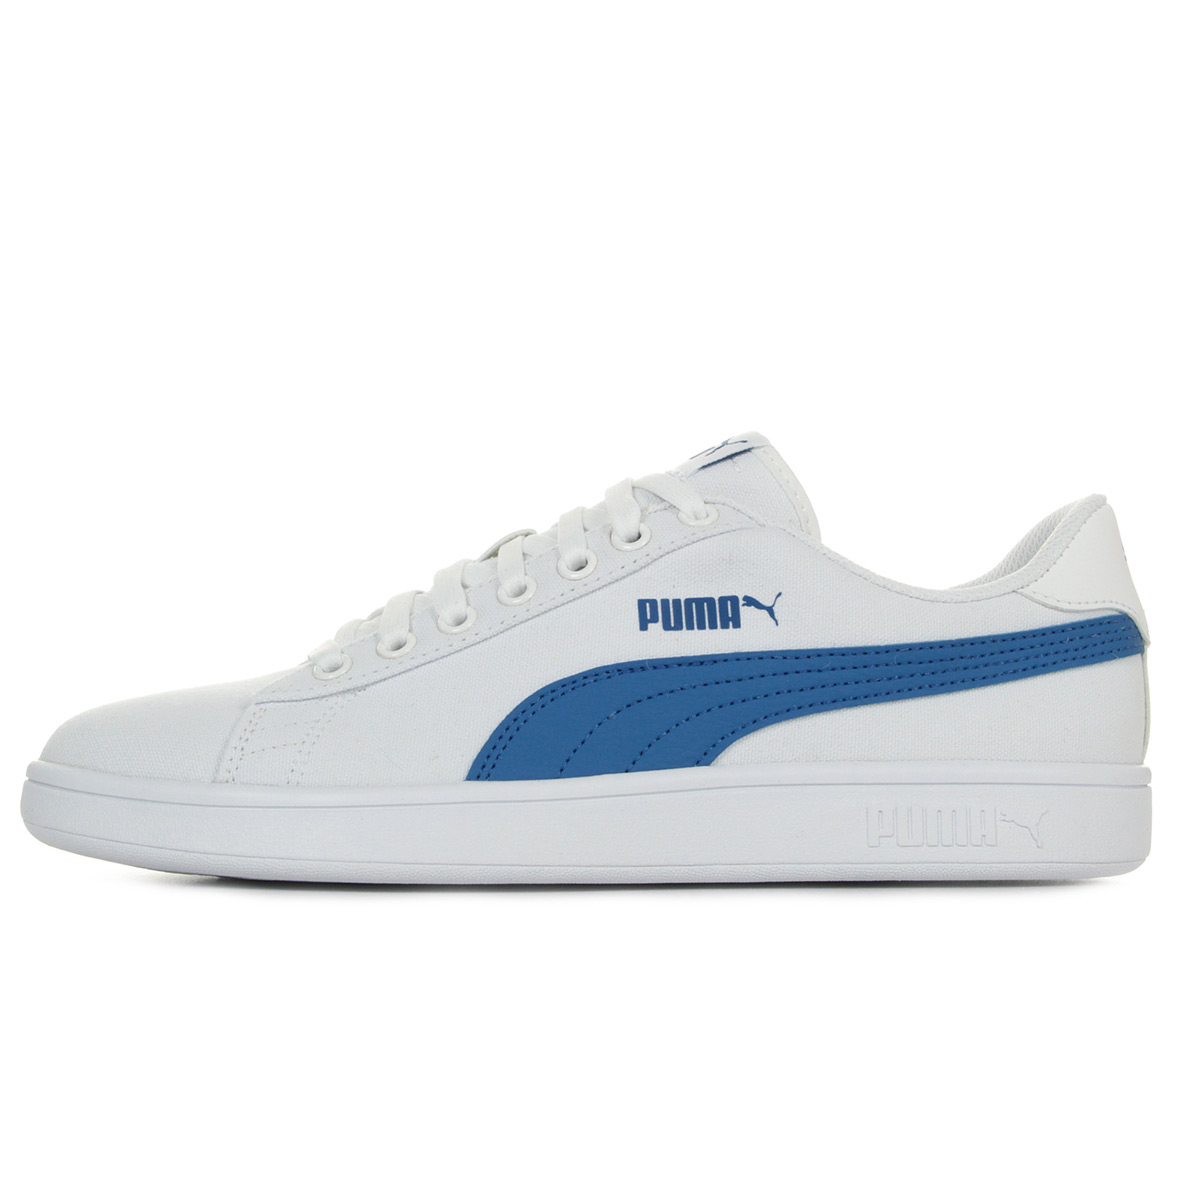 Puma Puma Smash v2 CV 36642002, Baskets mode homme